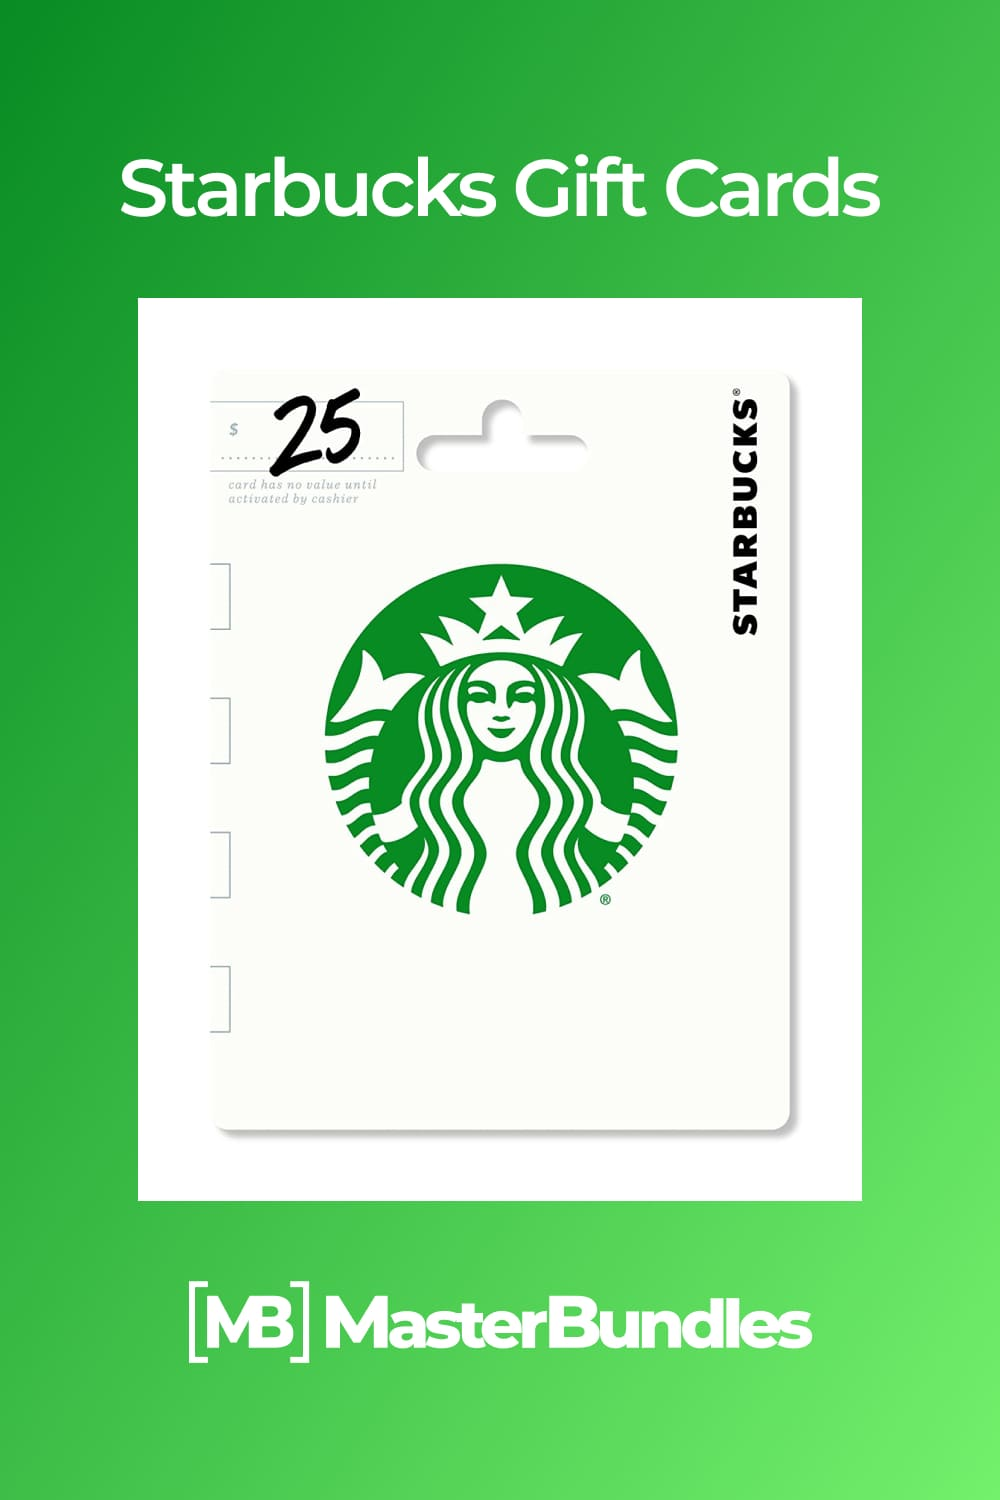 A Starbucks card is always welcome.